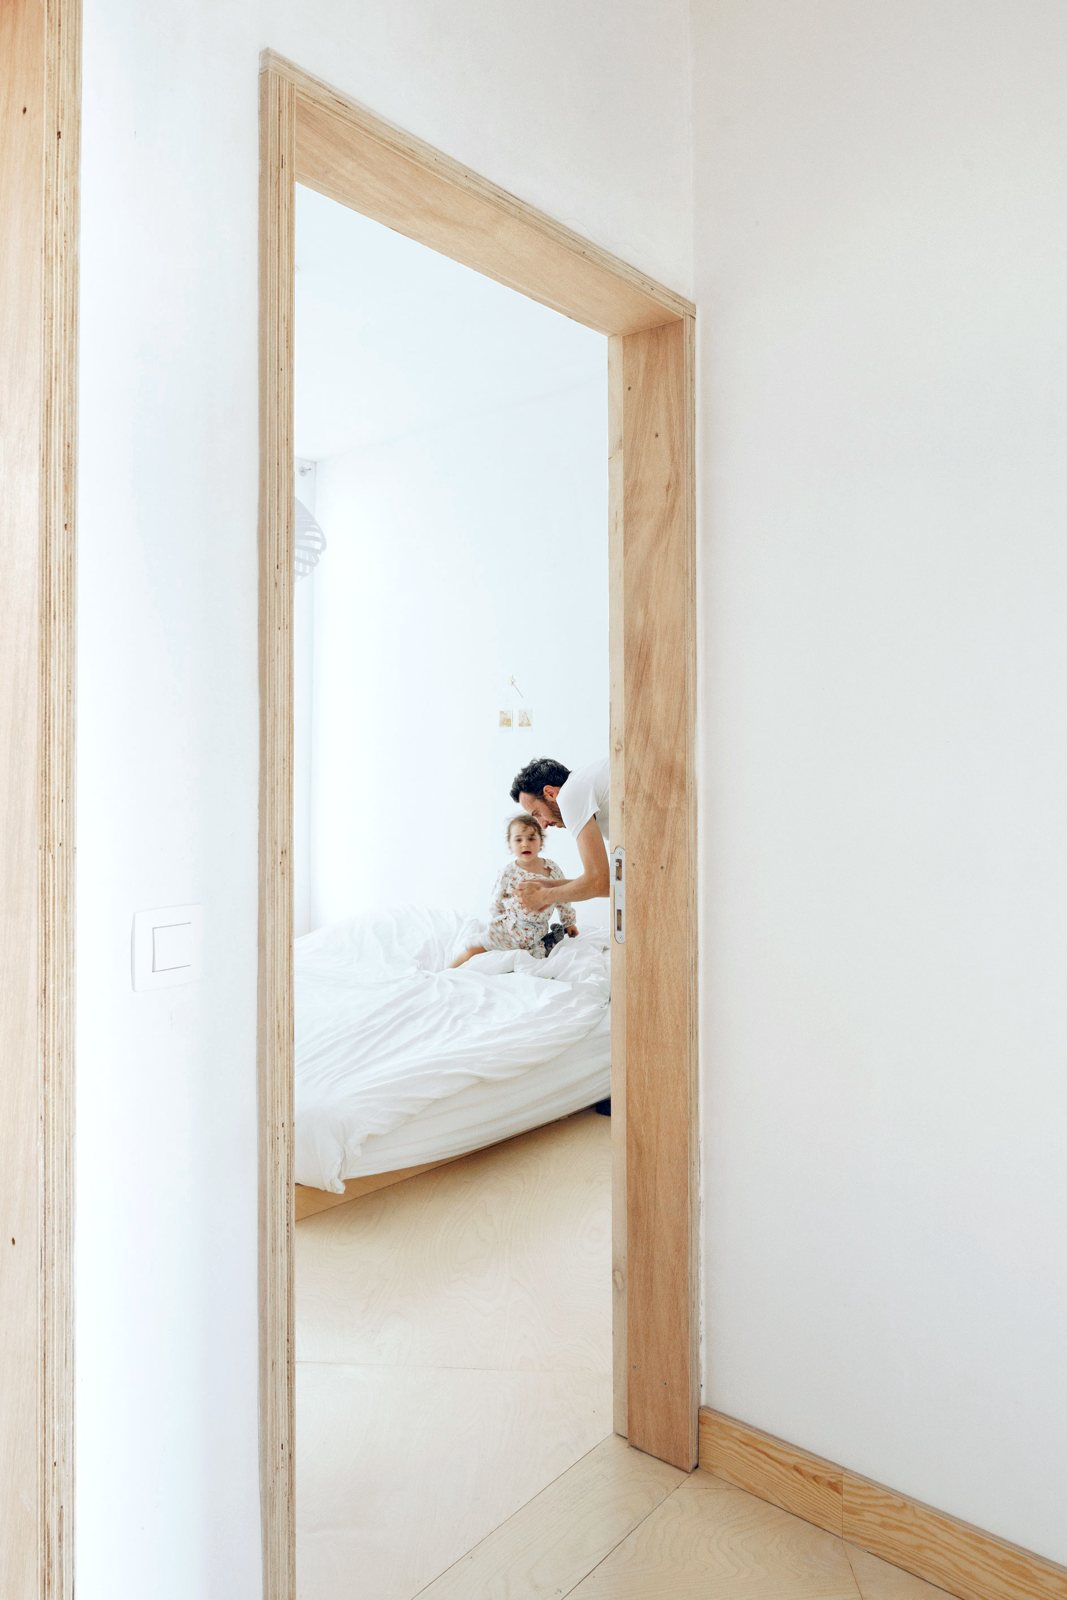 Plywood Door Designs For Rooms Plywood Door Frame Av By I S M Architecten Up Interiors